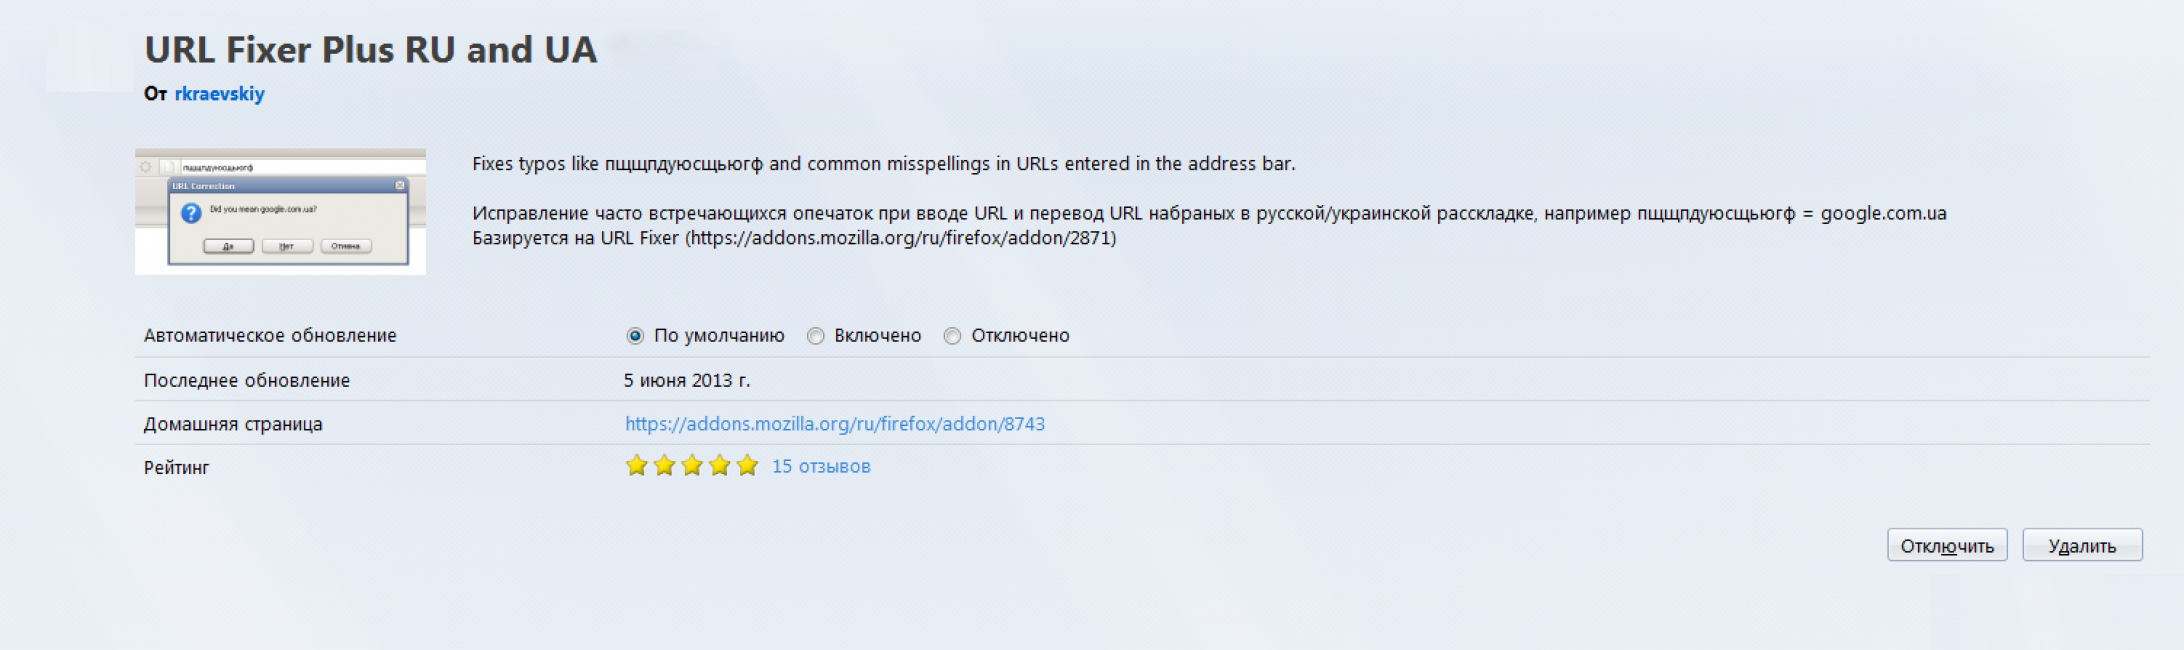 URL Fixer plus Ru and UA